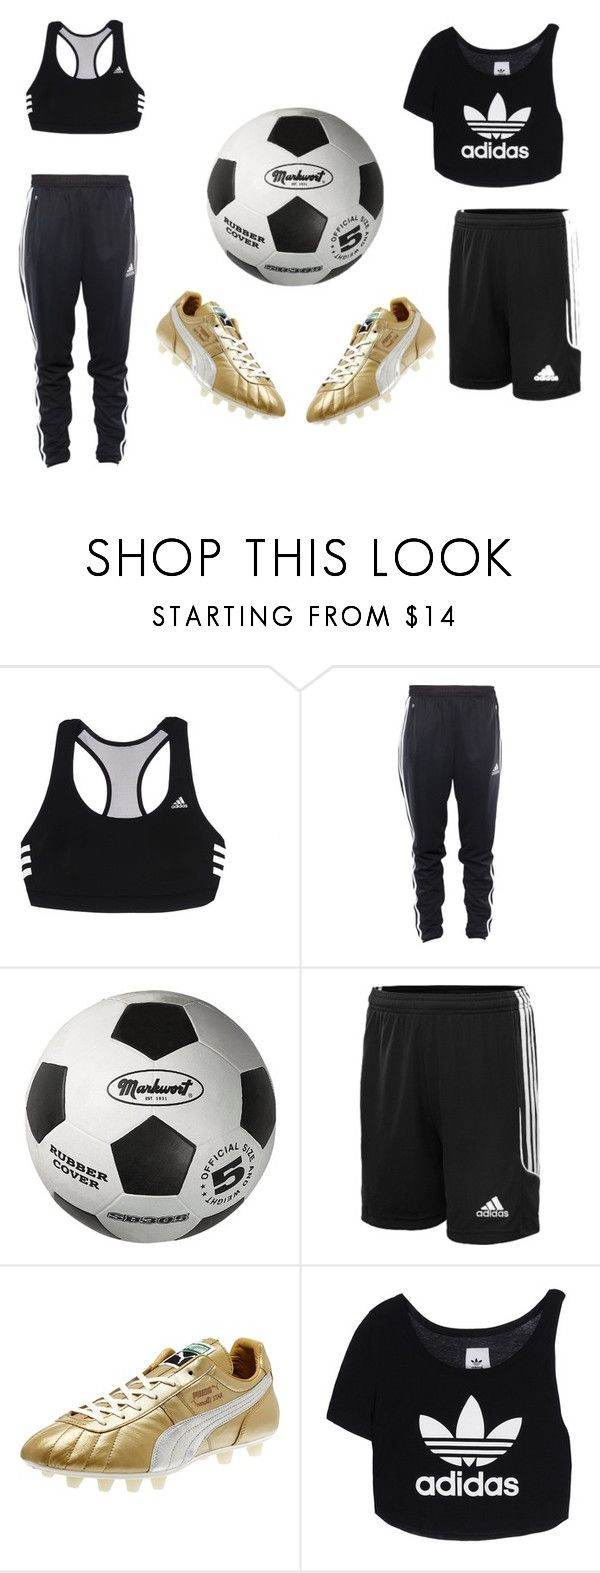 """#soccer"" by jasminegonzalez1203 ❤ liked on Polyvore featuring adidas, Puma and adidas Originals"